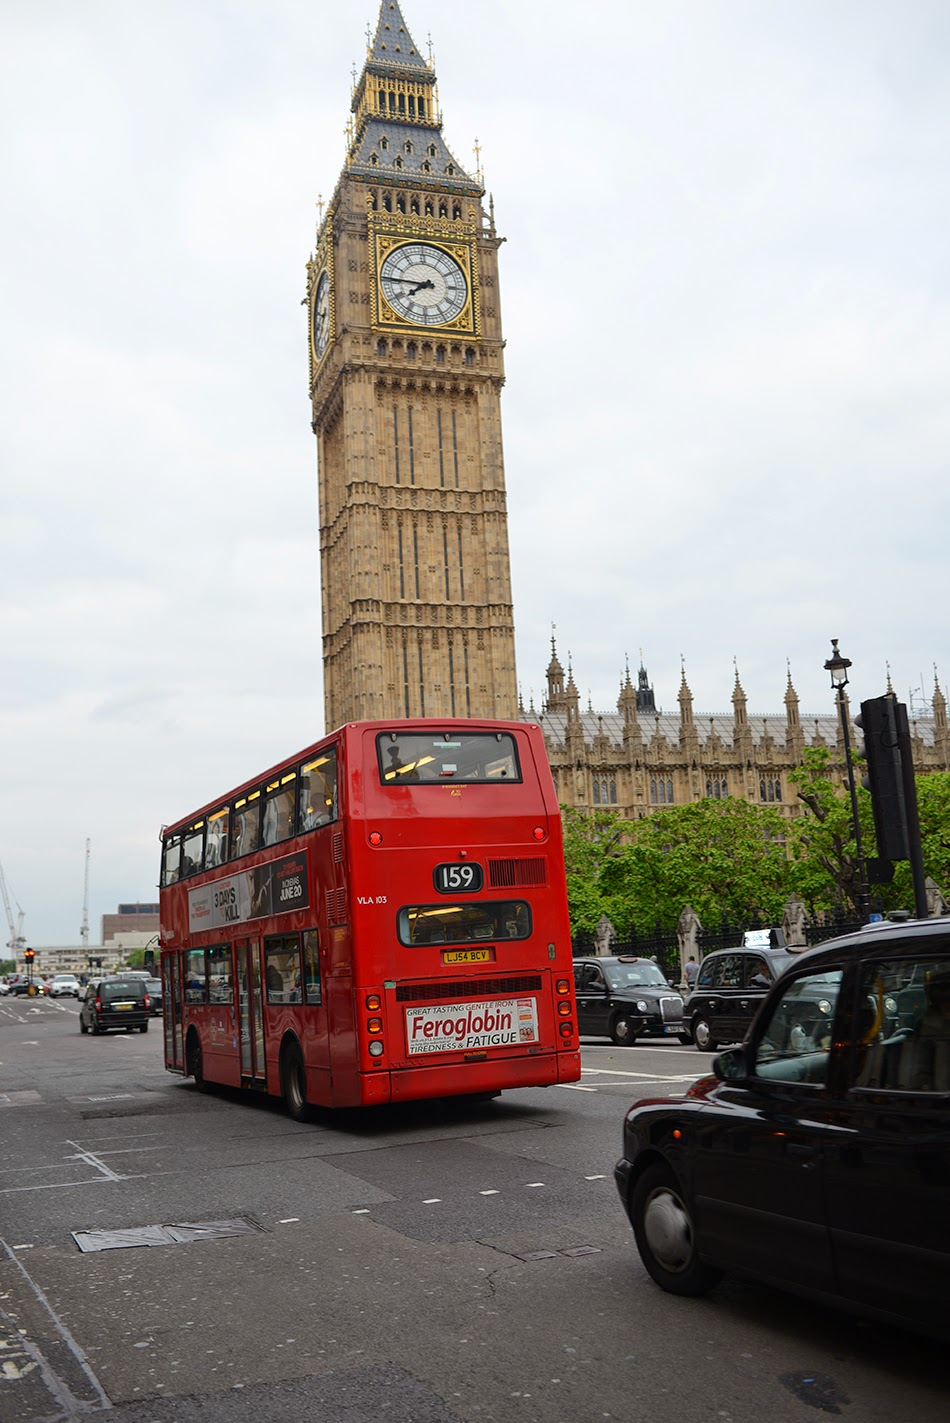 hight resolution of arriving back to one of my favorite places ever london the double decker red bus s phone booths and architecture just get me going